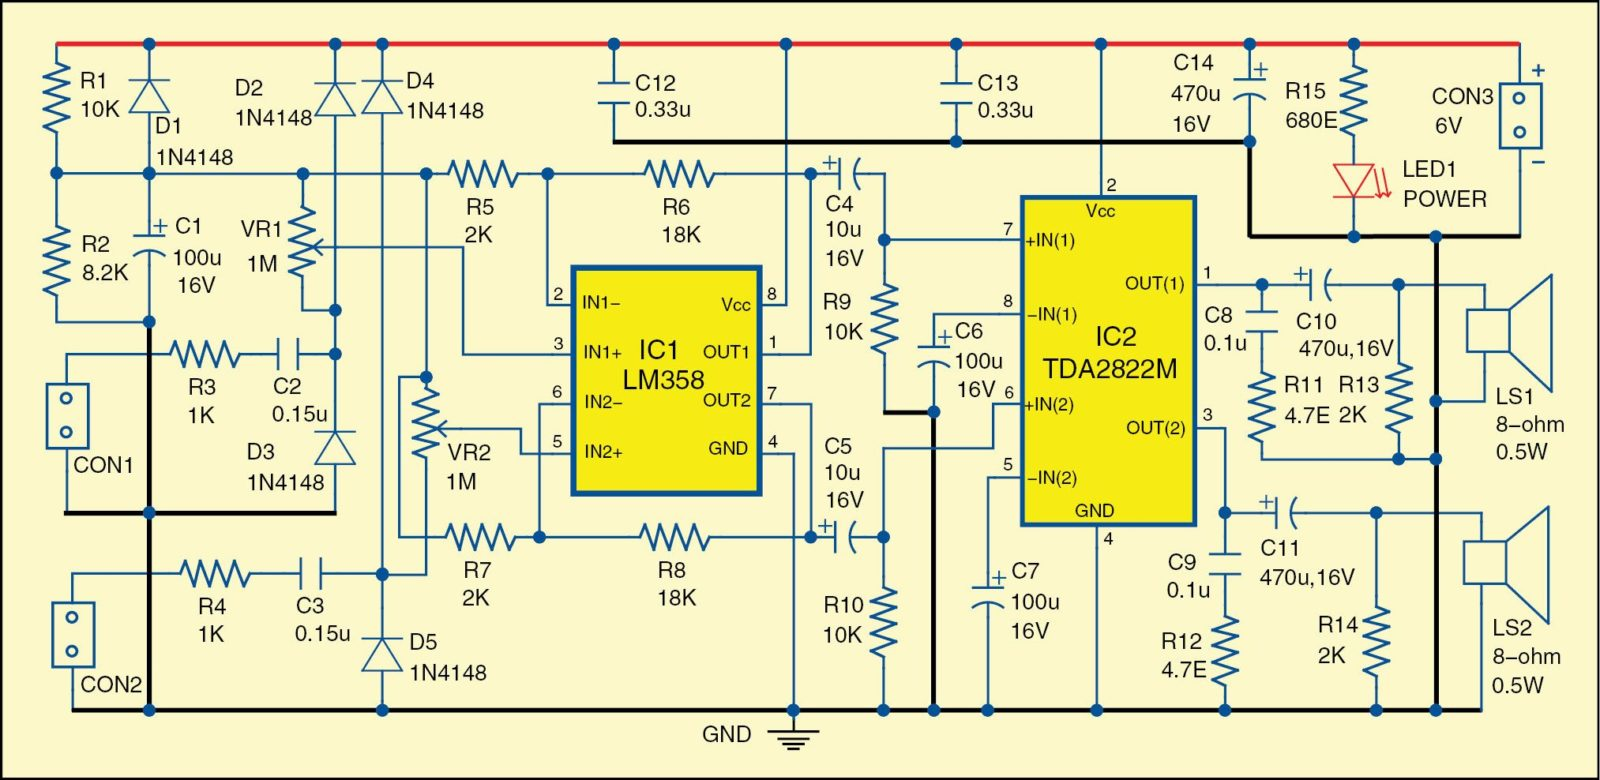 Earth leakage indicator circuit electronic circuit projects - 35a_fig 1